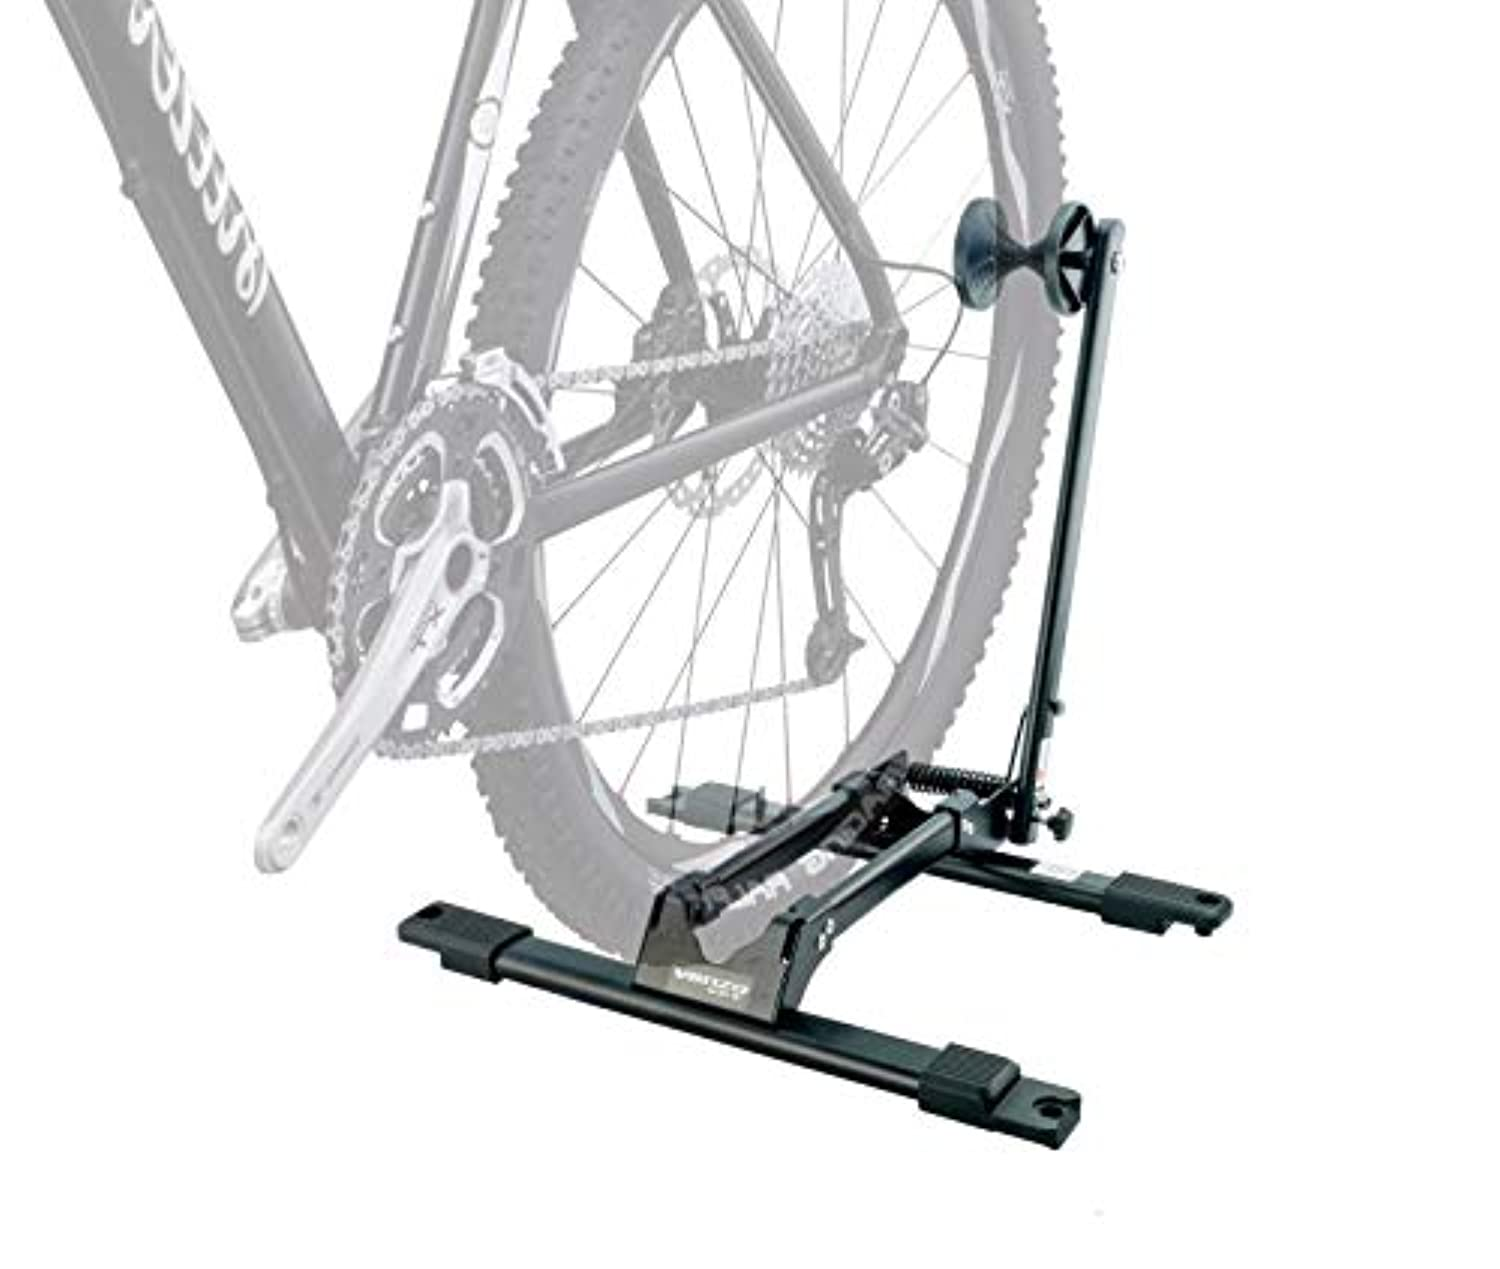 Bike Bicycle Deluxe Storage Floor Stand Rack by Venzo